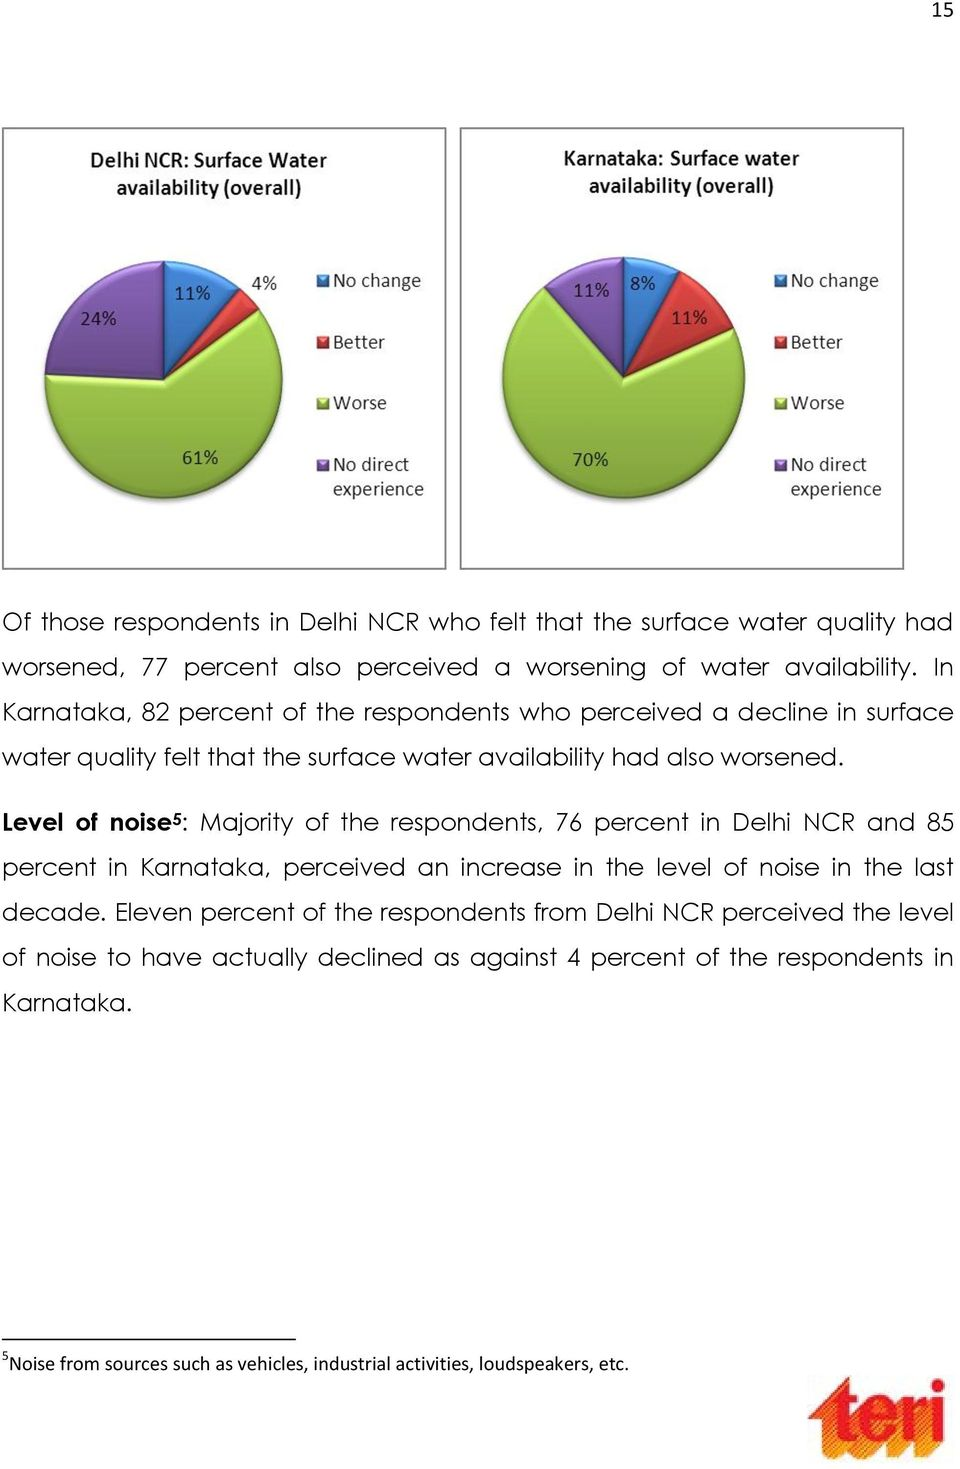 Level of noise 5 : Majority of the respondents, 76 percent in Delhi NCR and 85 percent in Karnataka, perceived an increase in the level of noise in the last decade.